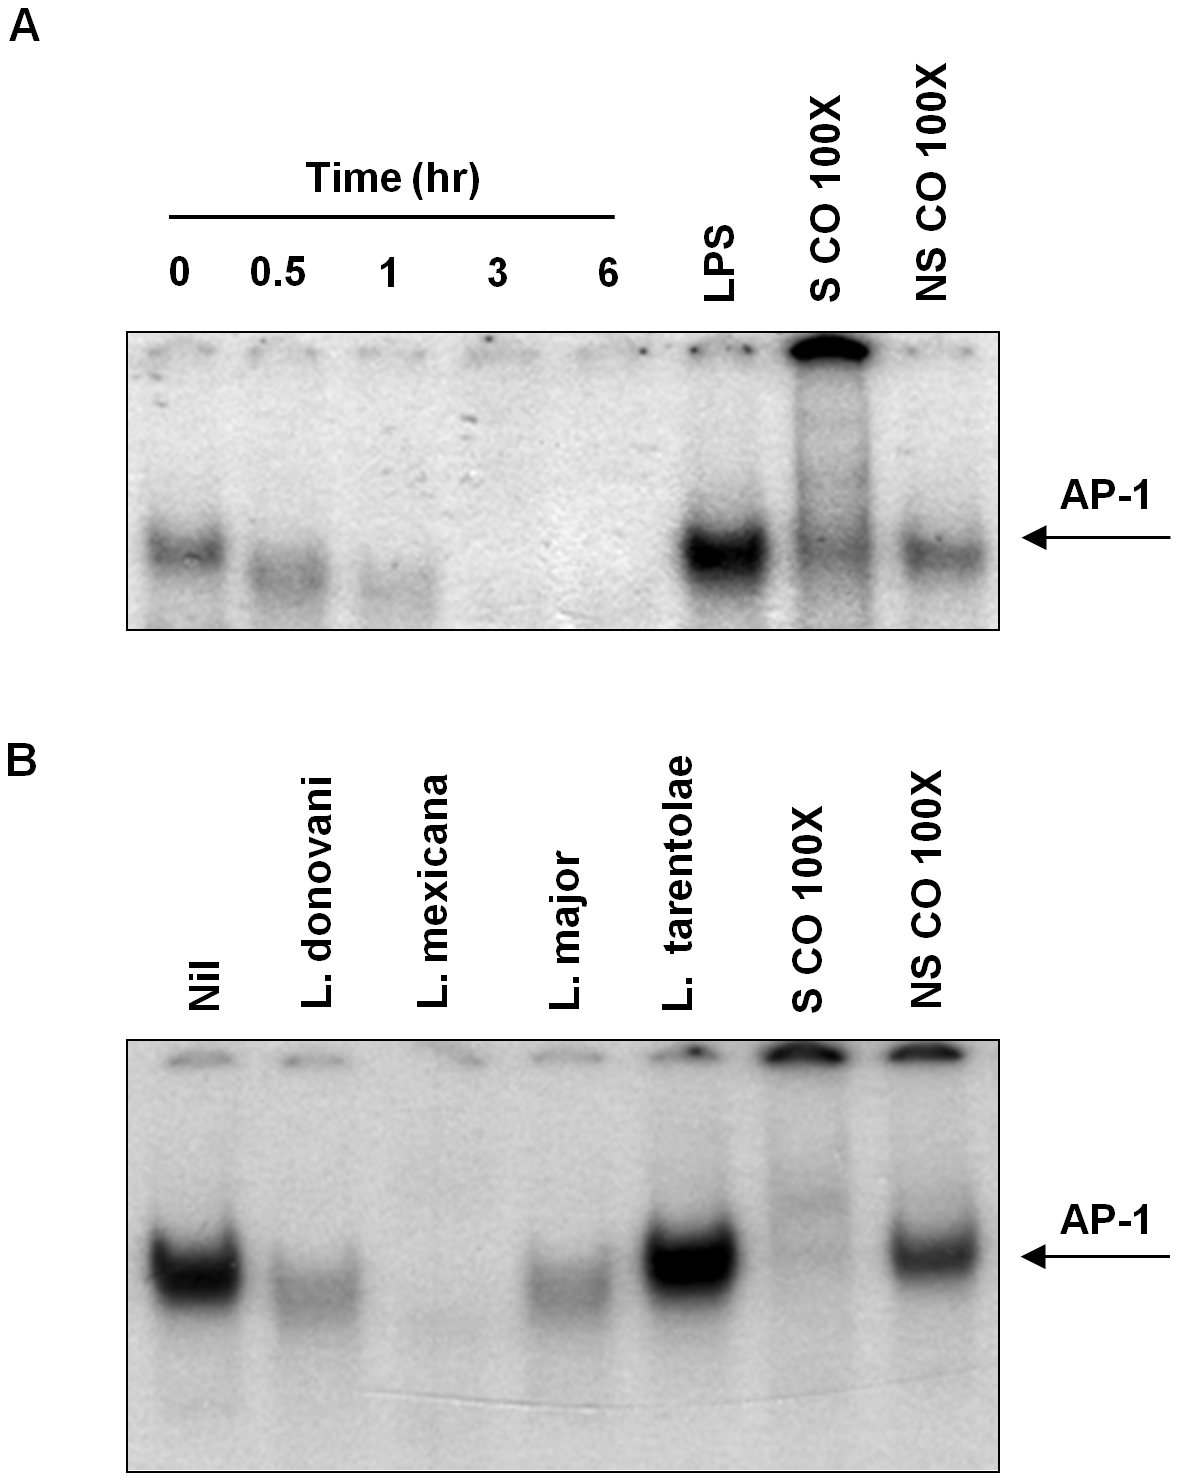 Infection with different species of <i>Leishmania</i> inhibits AP-1 DNA binding activity.